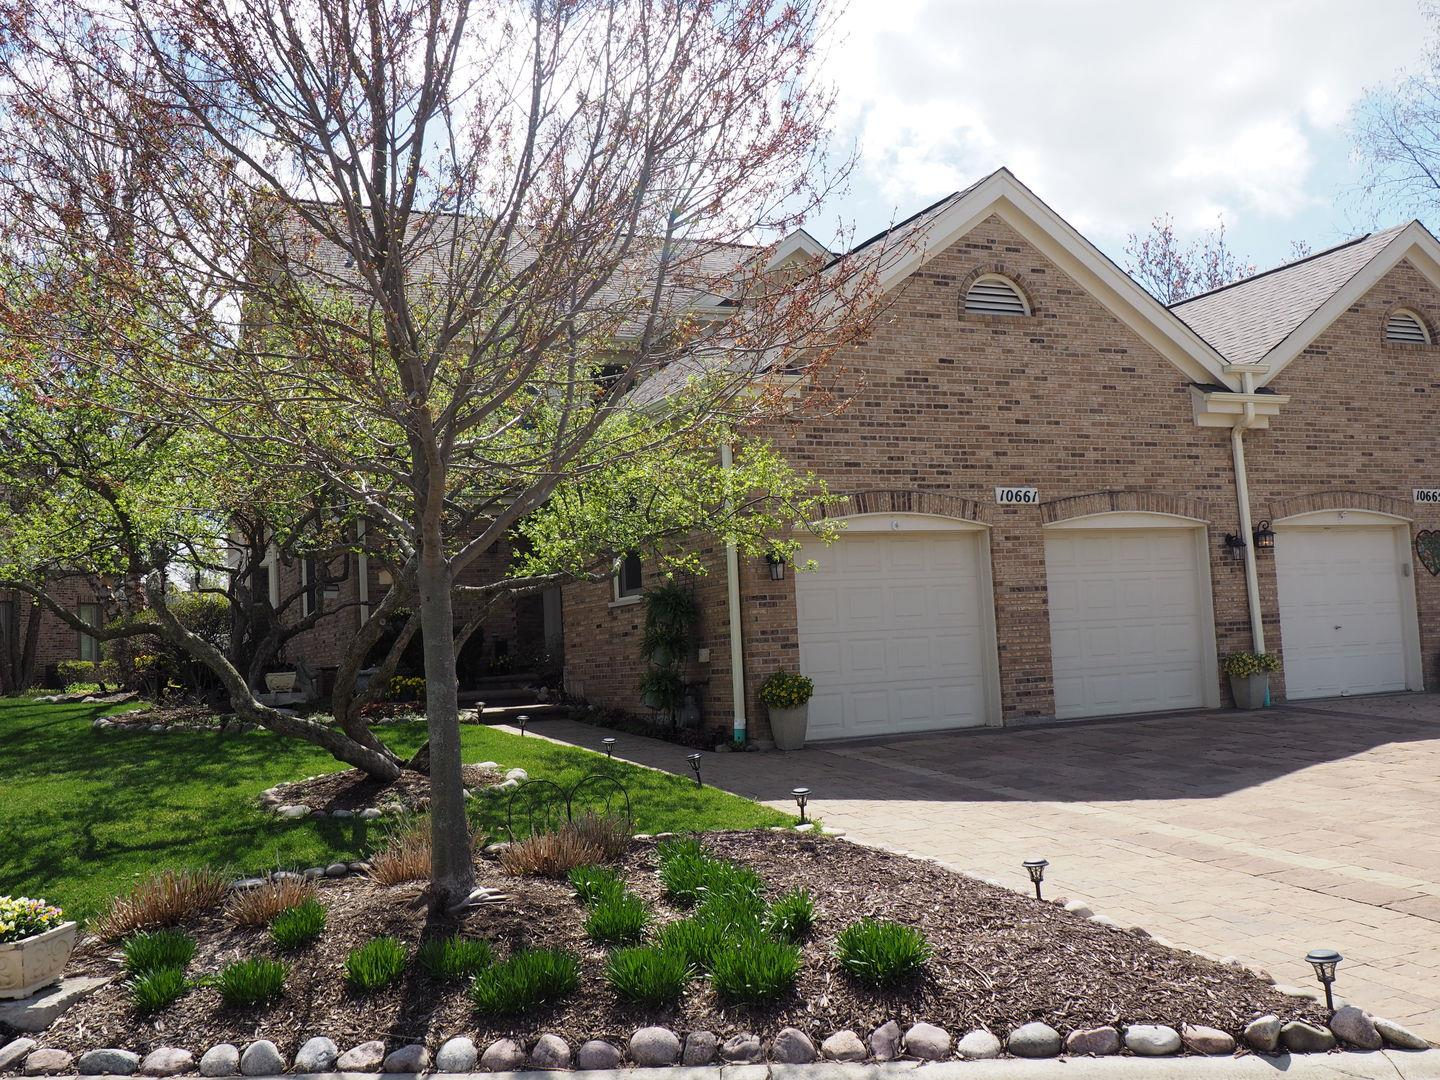 10661 Hollow Tree Road, Orland Park, IL 60462 - #: 11033946